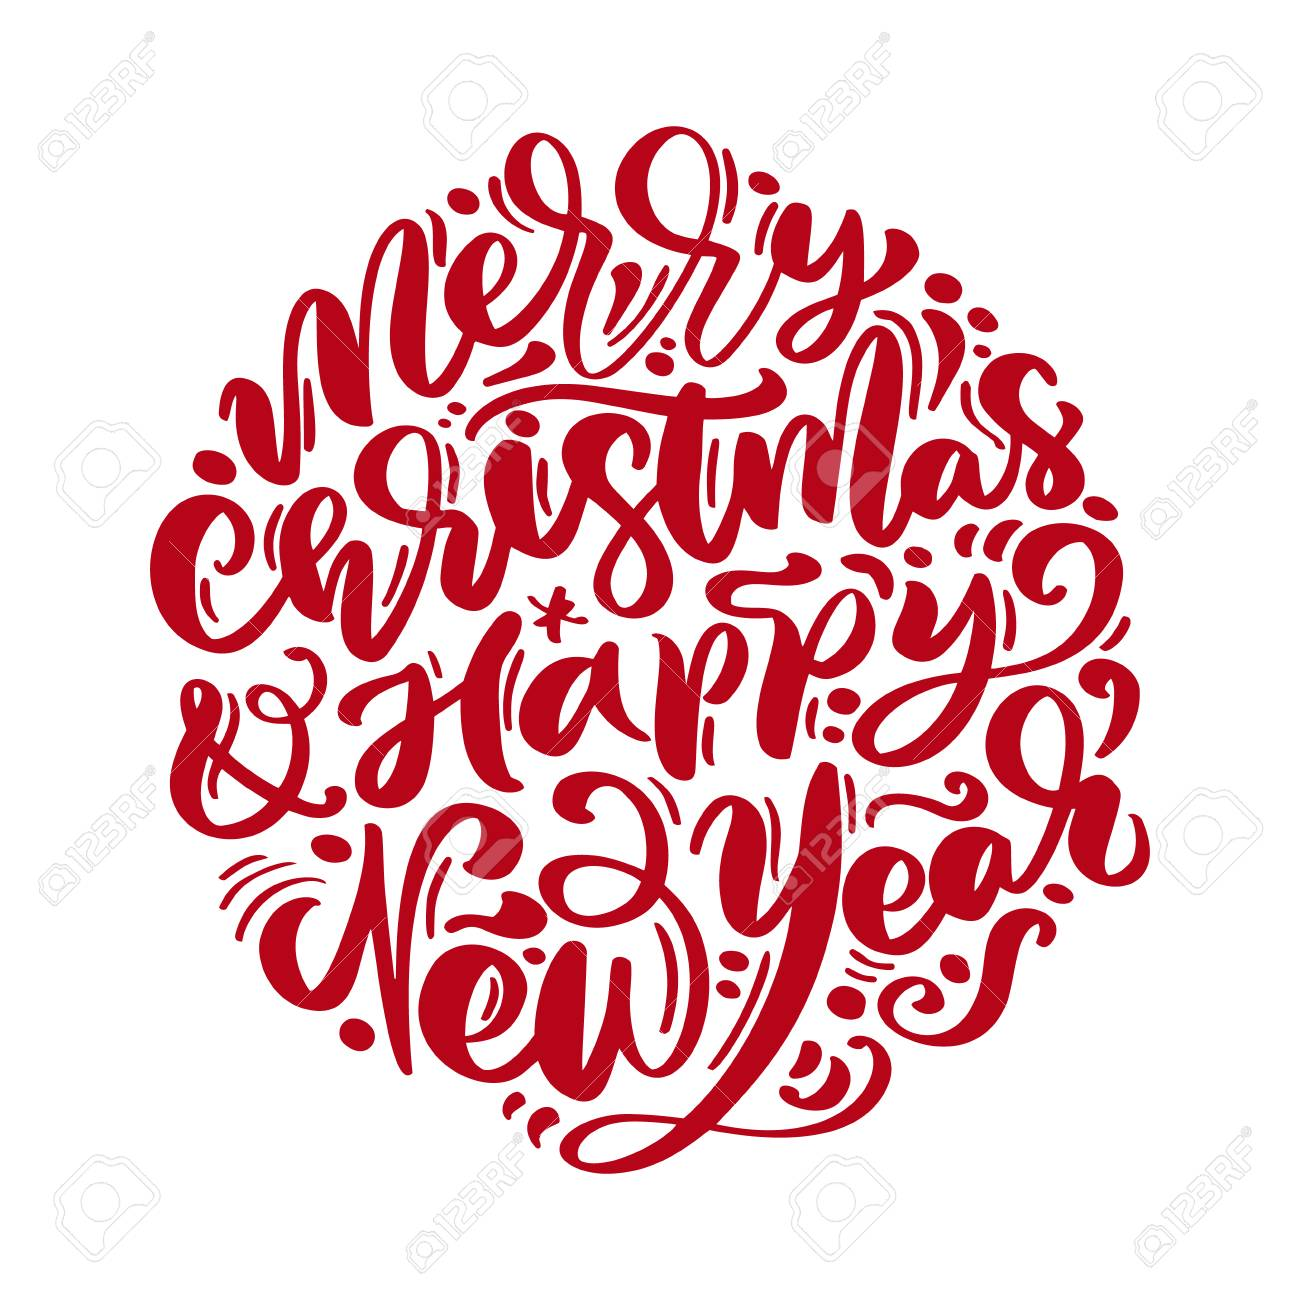 merry christmas and happy new year vector text calligraphic lettering royalty free cliparts vectors and stock illustration image 110490114 merry christmas and happy new year vector text calligraphic lettering